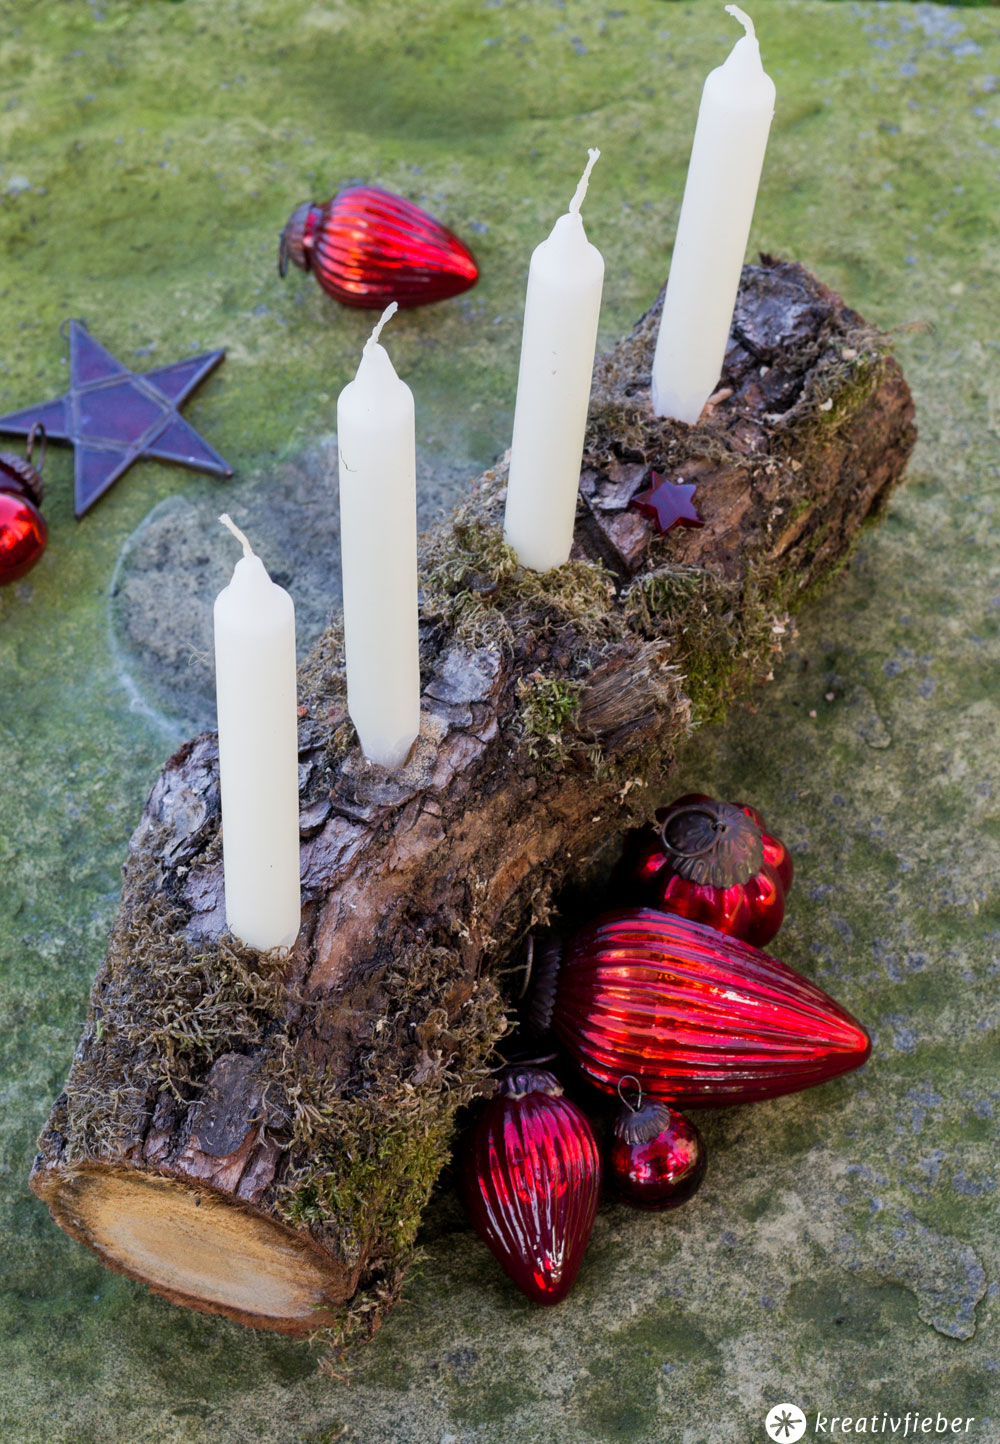 Schnelle adventskranz alternative aus holz diy - Adventsdeko aus holz ...